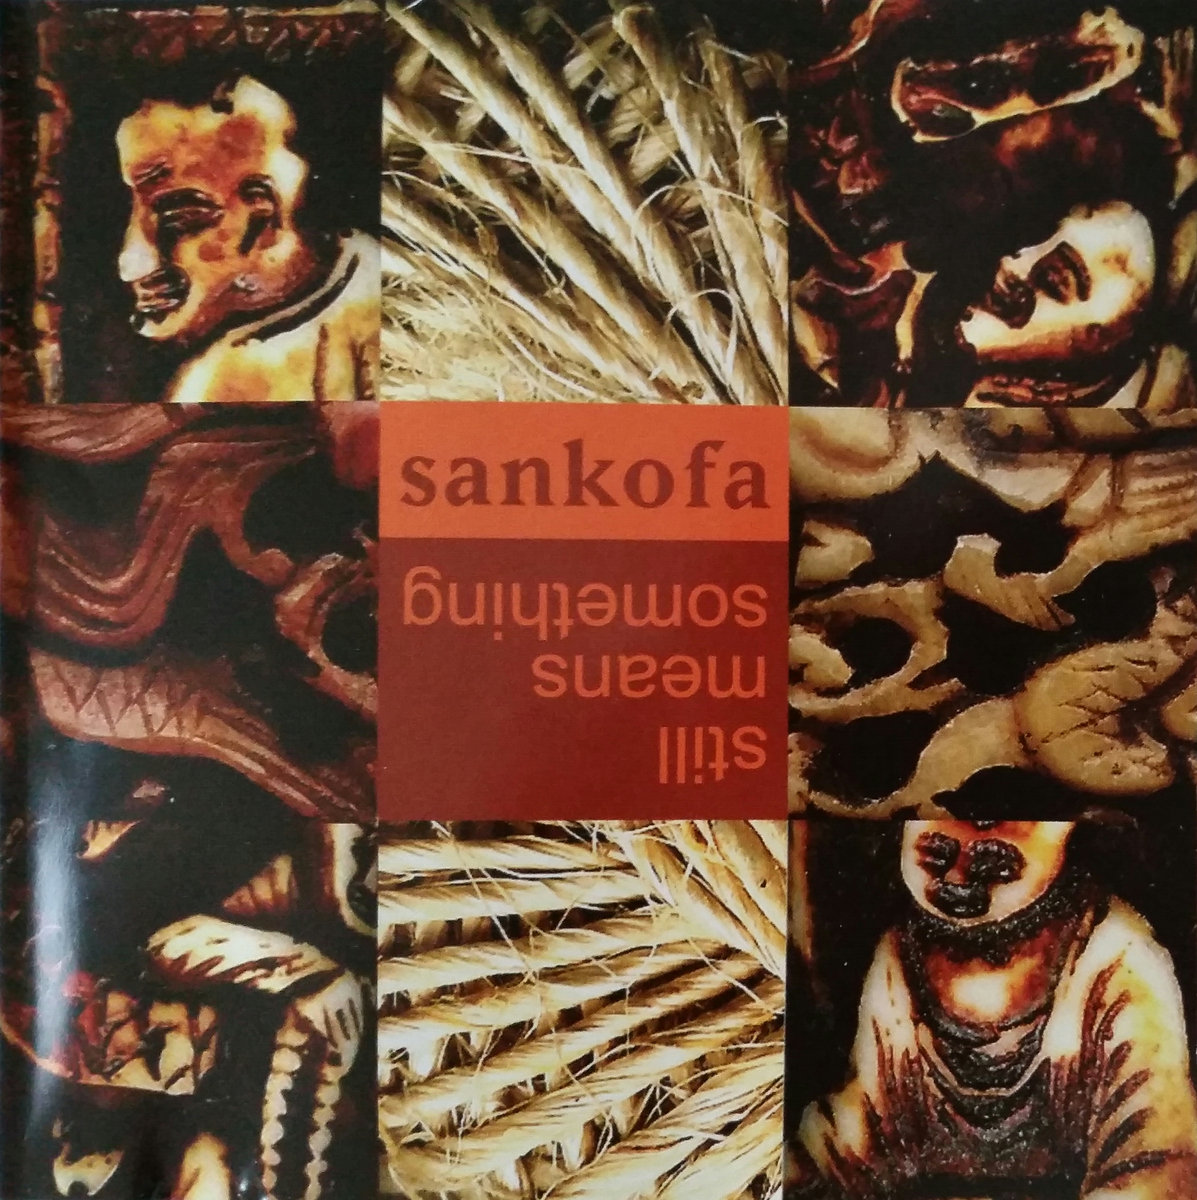 a movie analysis of sankofa A film by haile gerima, burkina faso: watch in cinema, online and on dvd movie sankofa haile gerima – burkina faso – 1993 summary credits press documents.